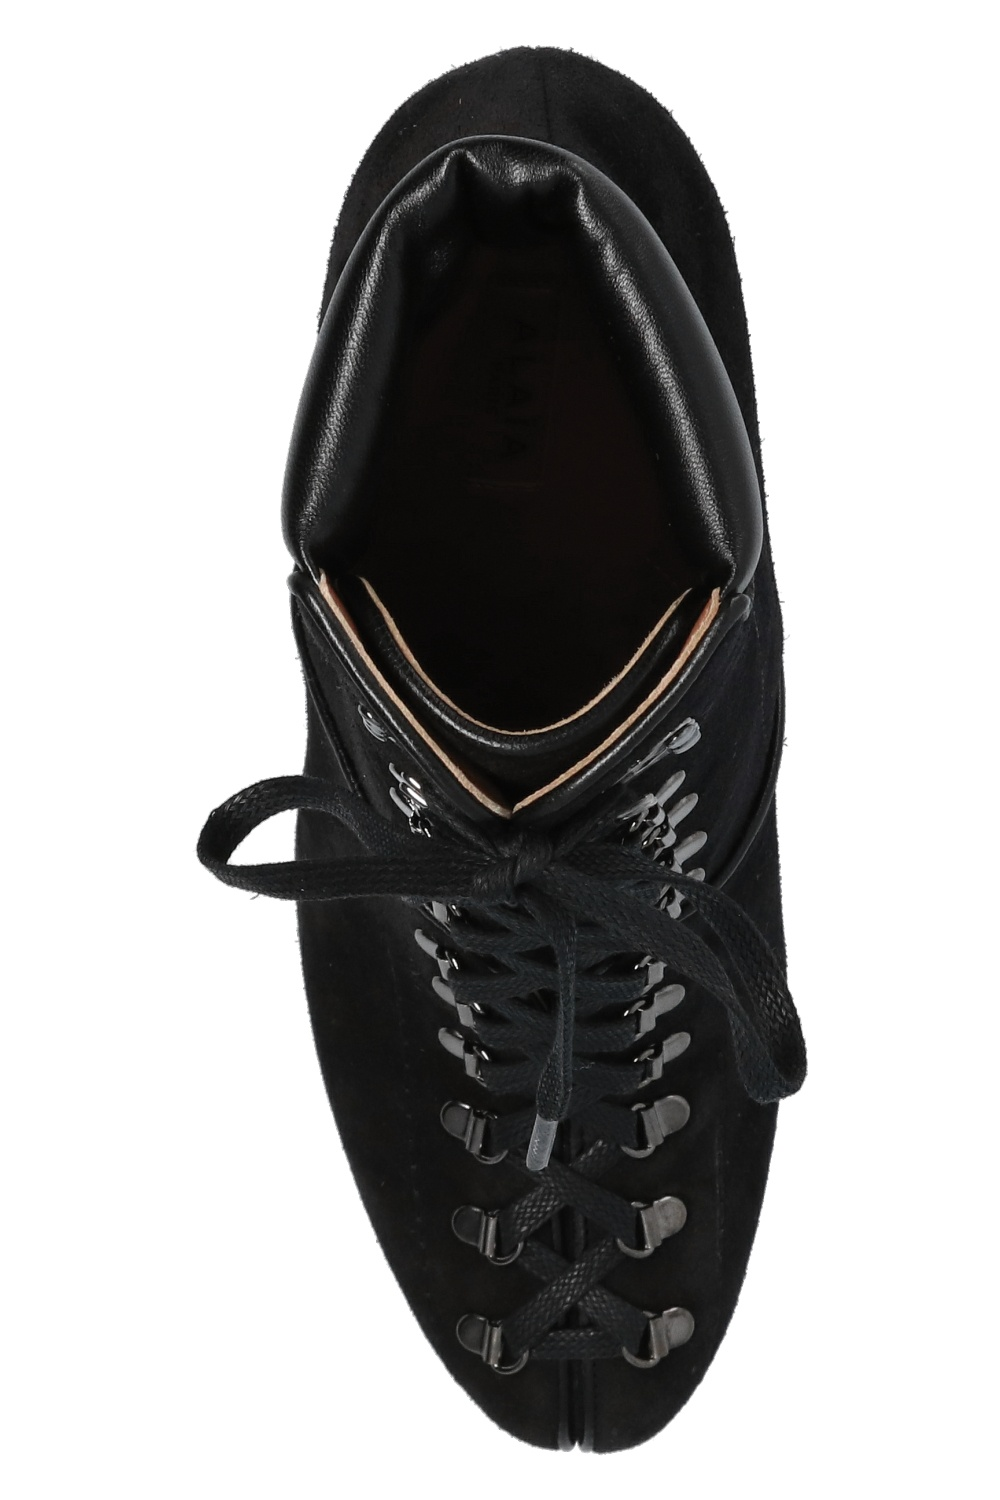 Alaia Suede heeled ankle boots